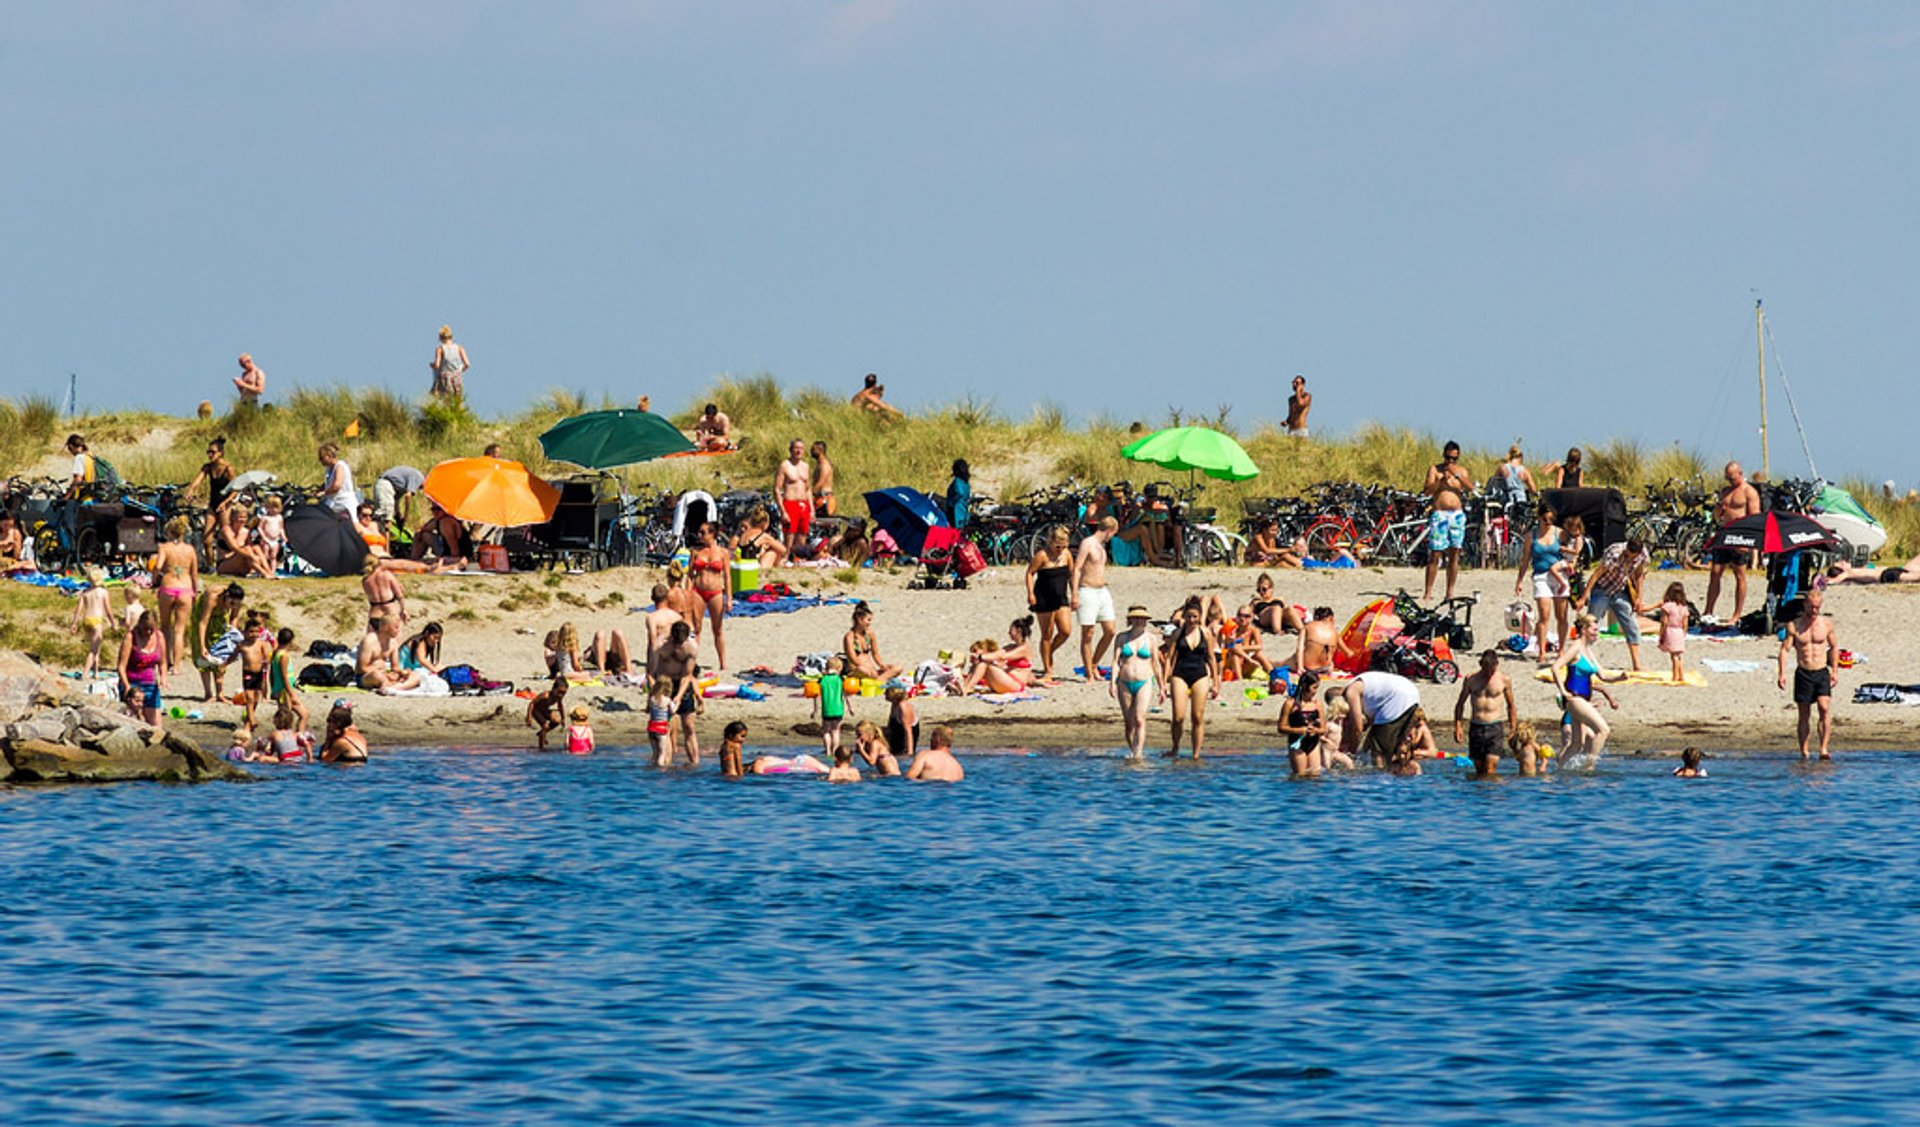 Amager Beach Park best time for beach season in copenhagen 2020 & map - rove